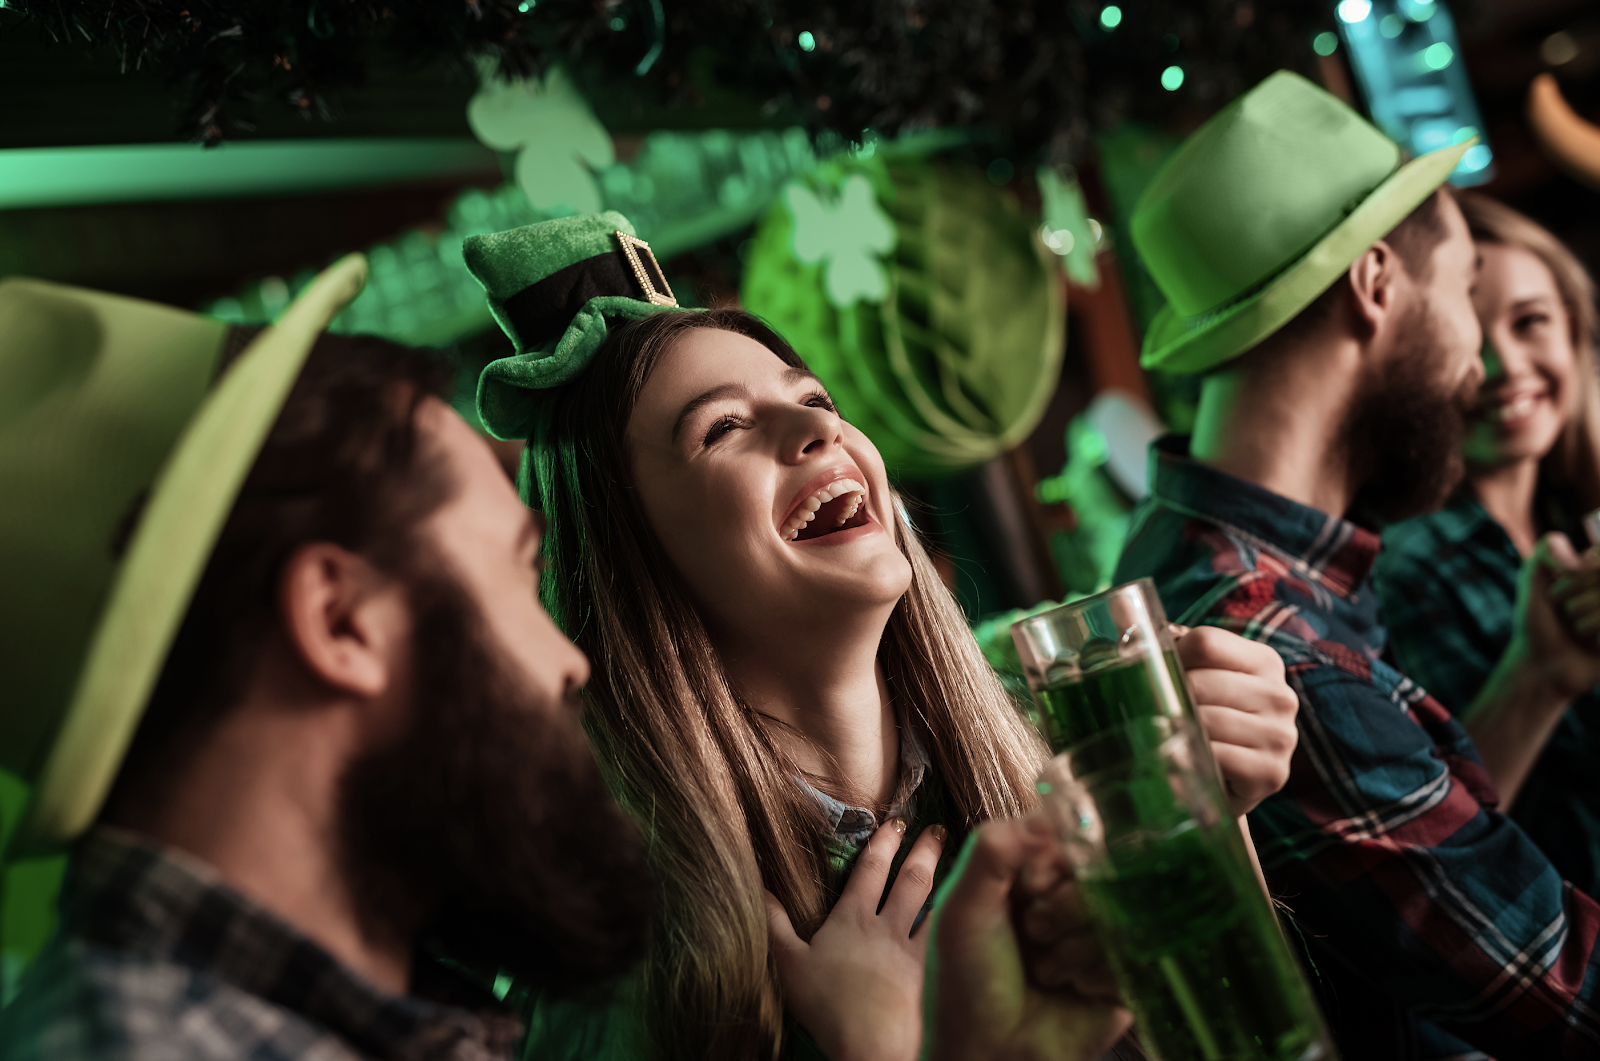 friends celebrating st. patrick's day in a bar wearing green hats and green beer and are laughing